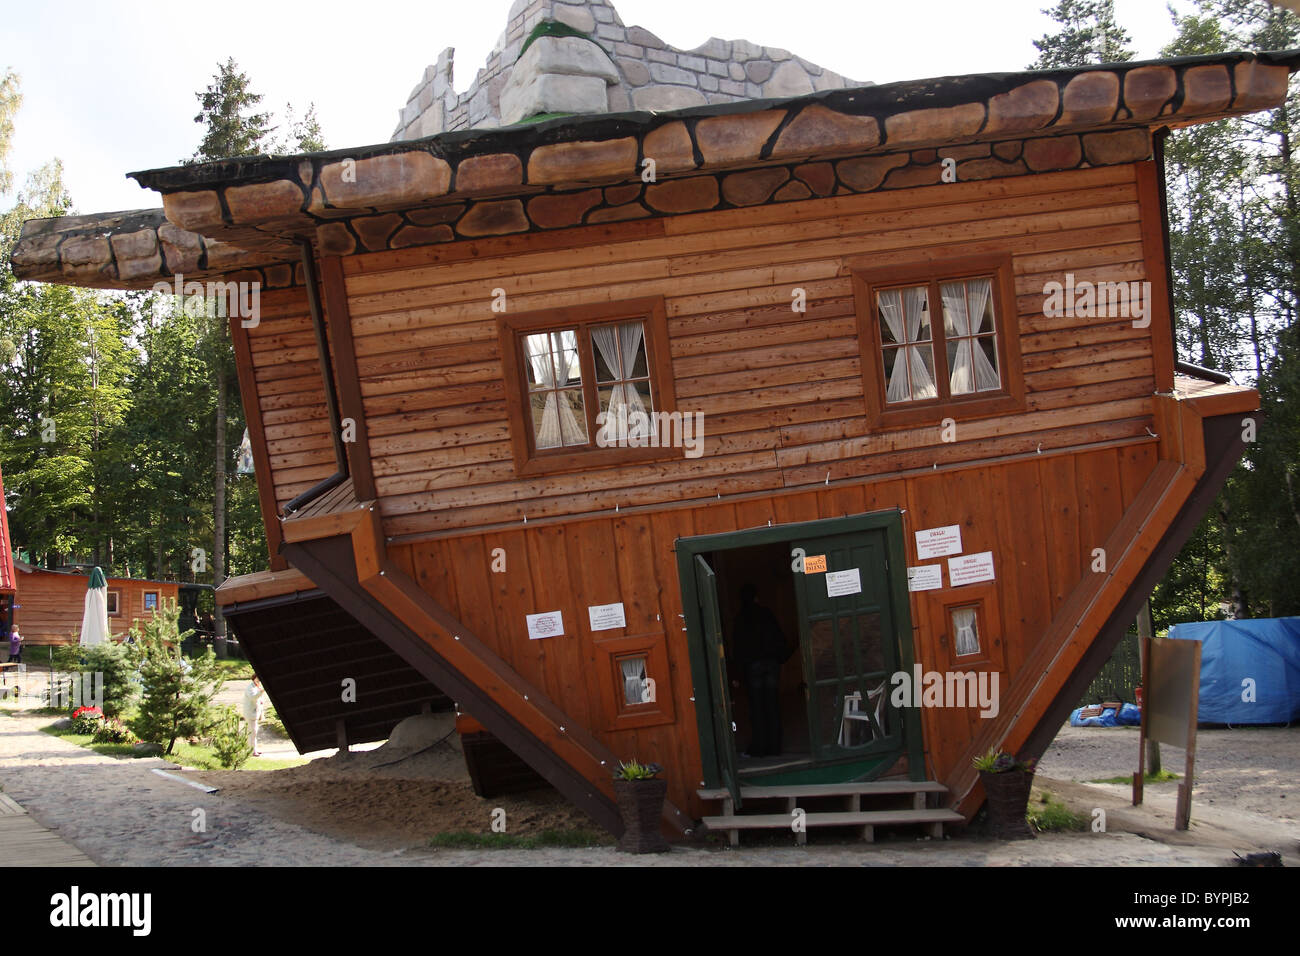 Upside down house in open-air museum in Szymbark, Kashubia, Poland